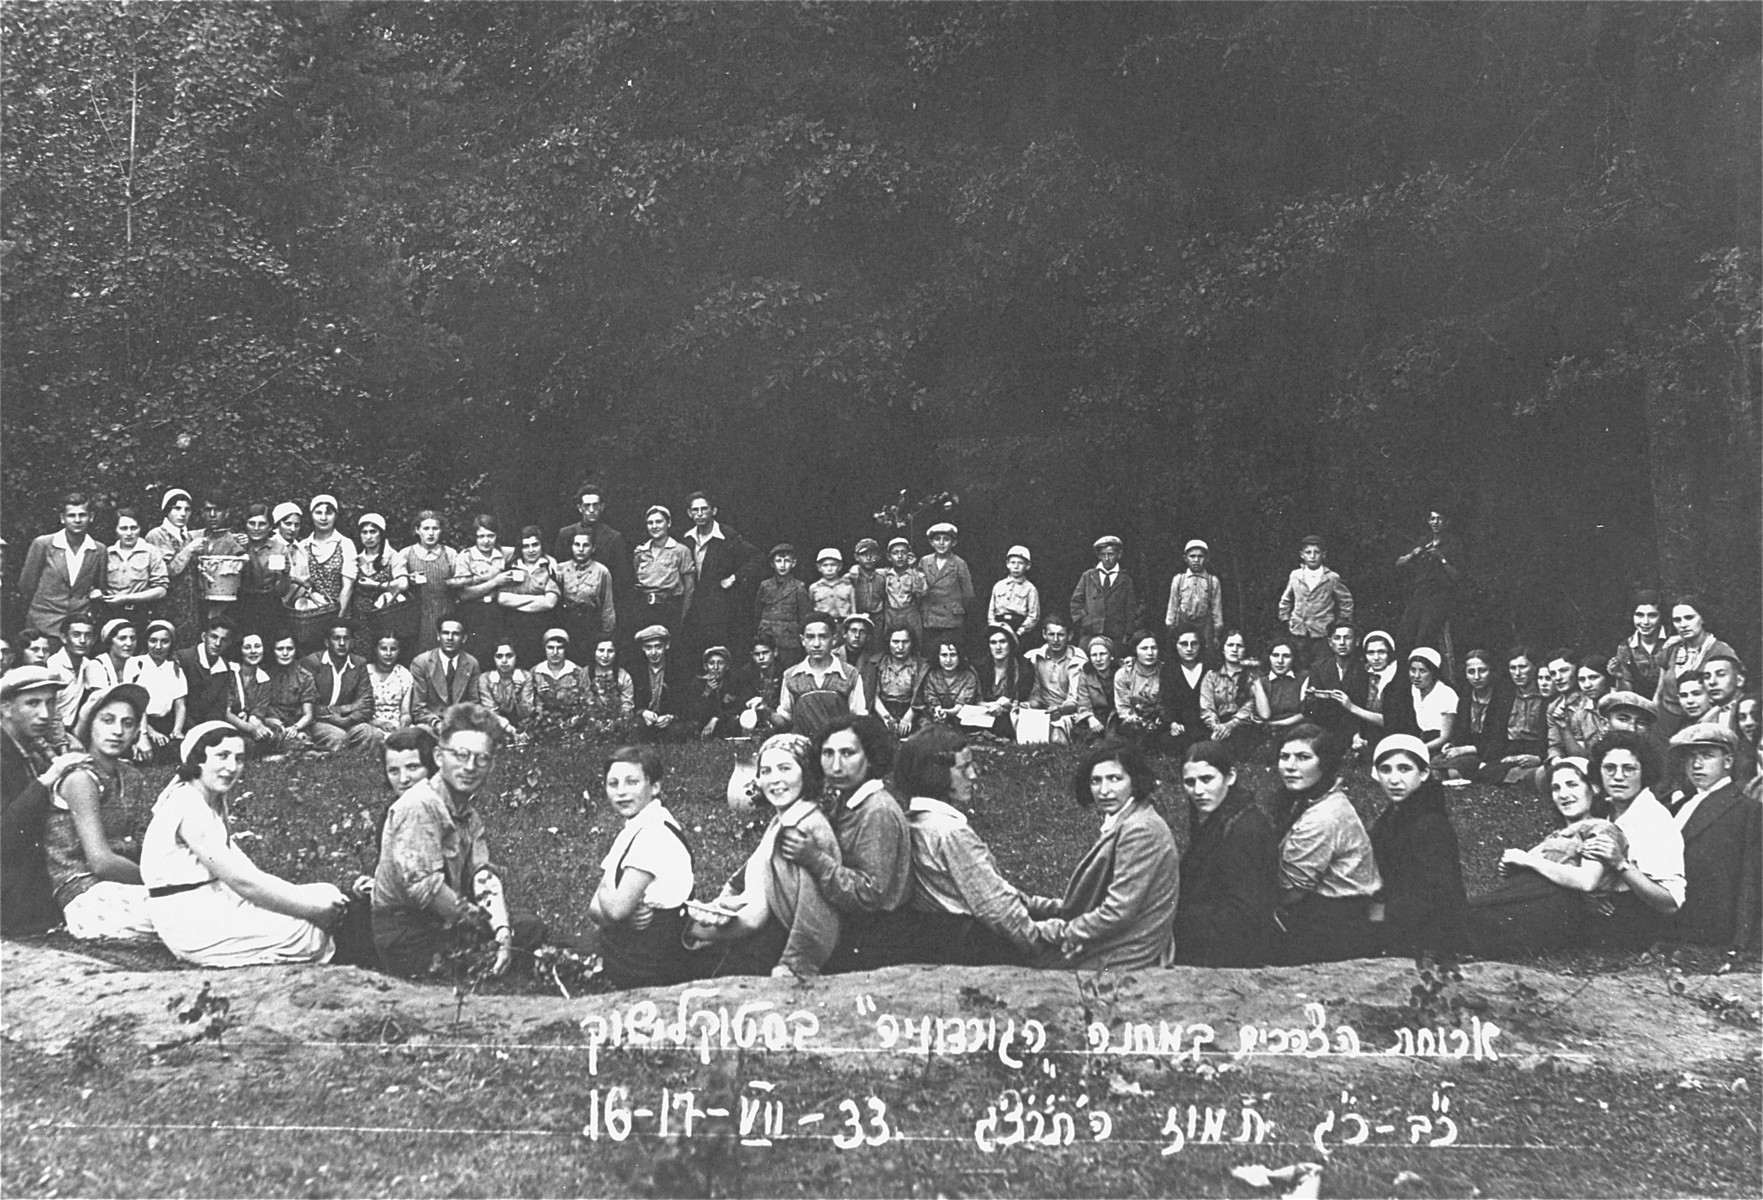 Jewish youth attend the summer camp of the Zionist Gordonia movement in Stoklishok, Lithuania.  Participants are gathered outside for lunch.